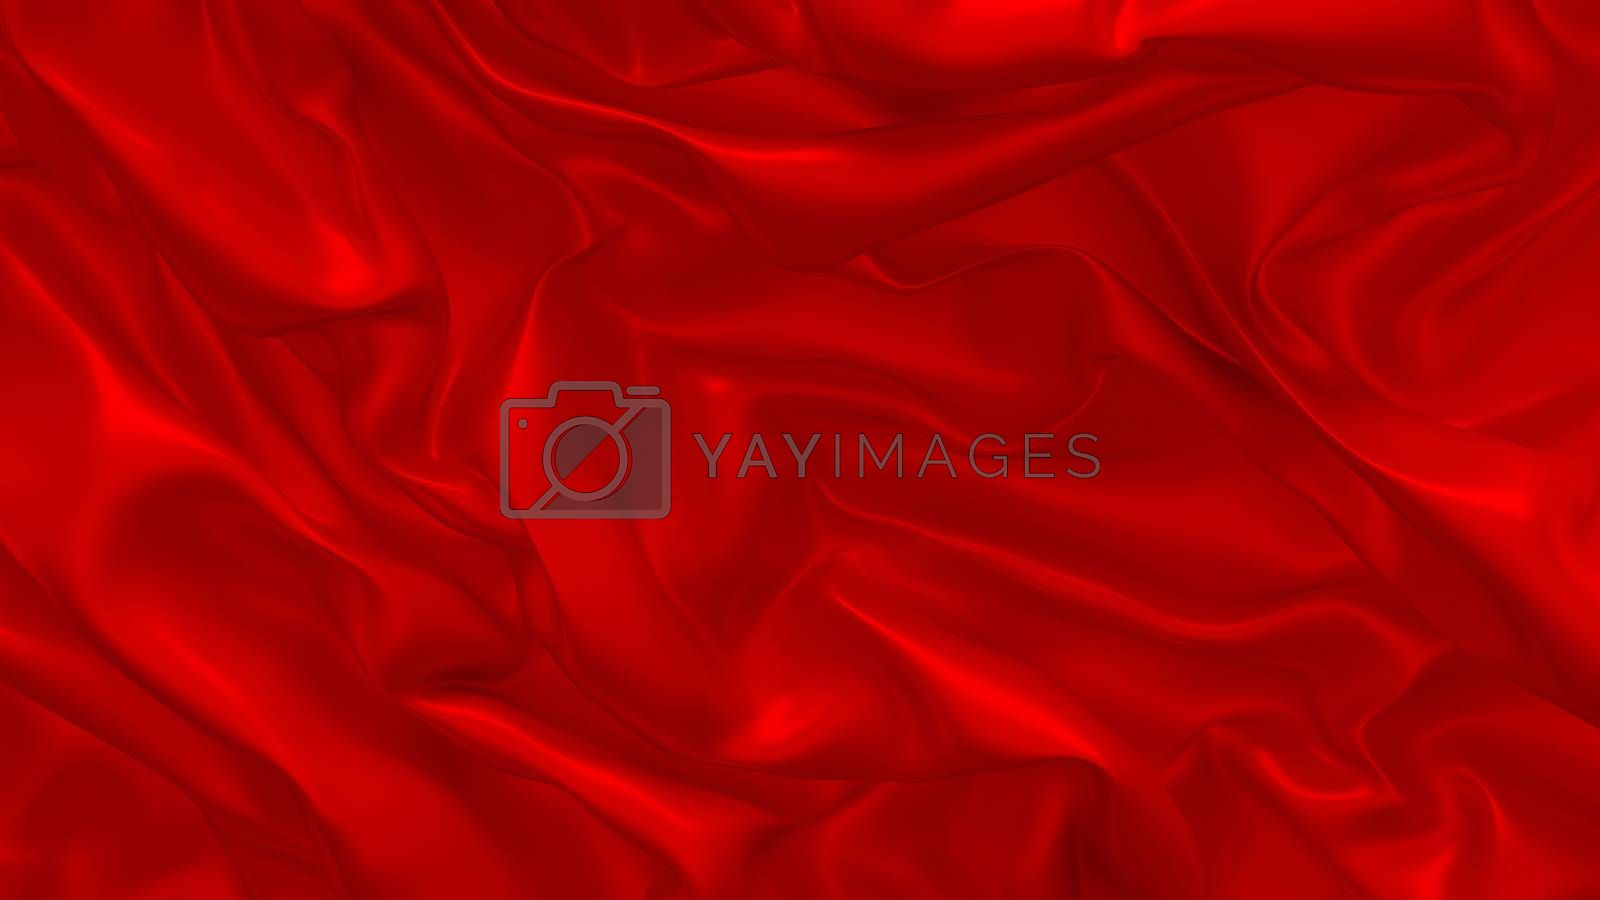 3D Illustration Abstract Background with Glare and with the Red